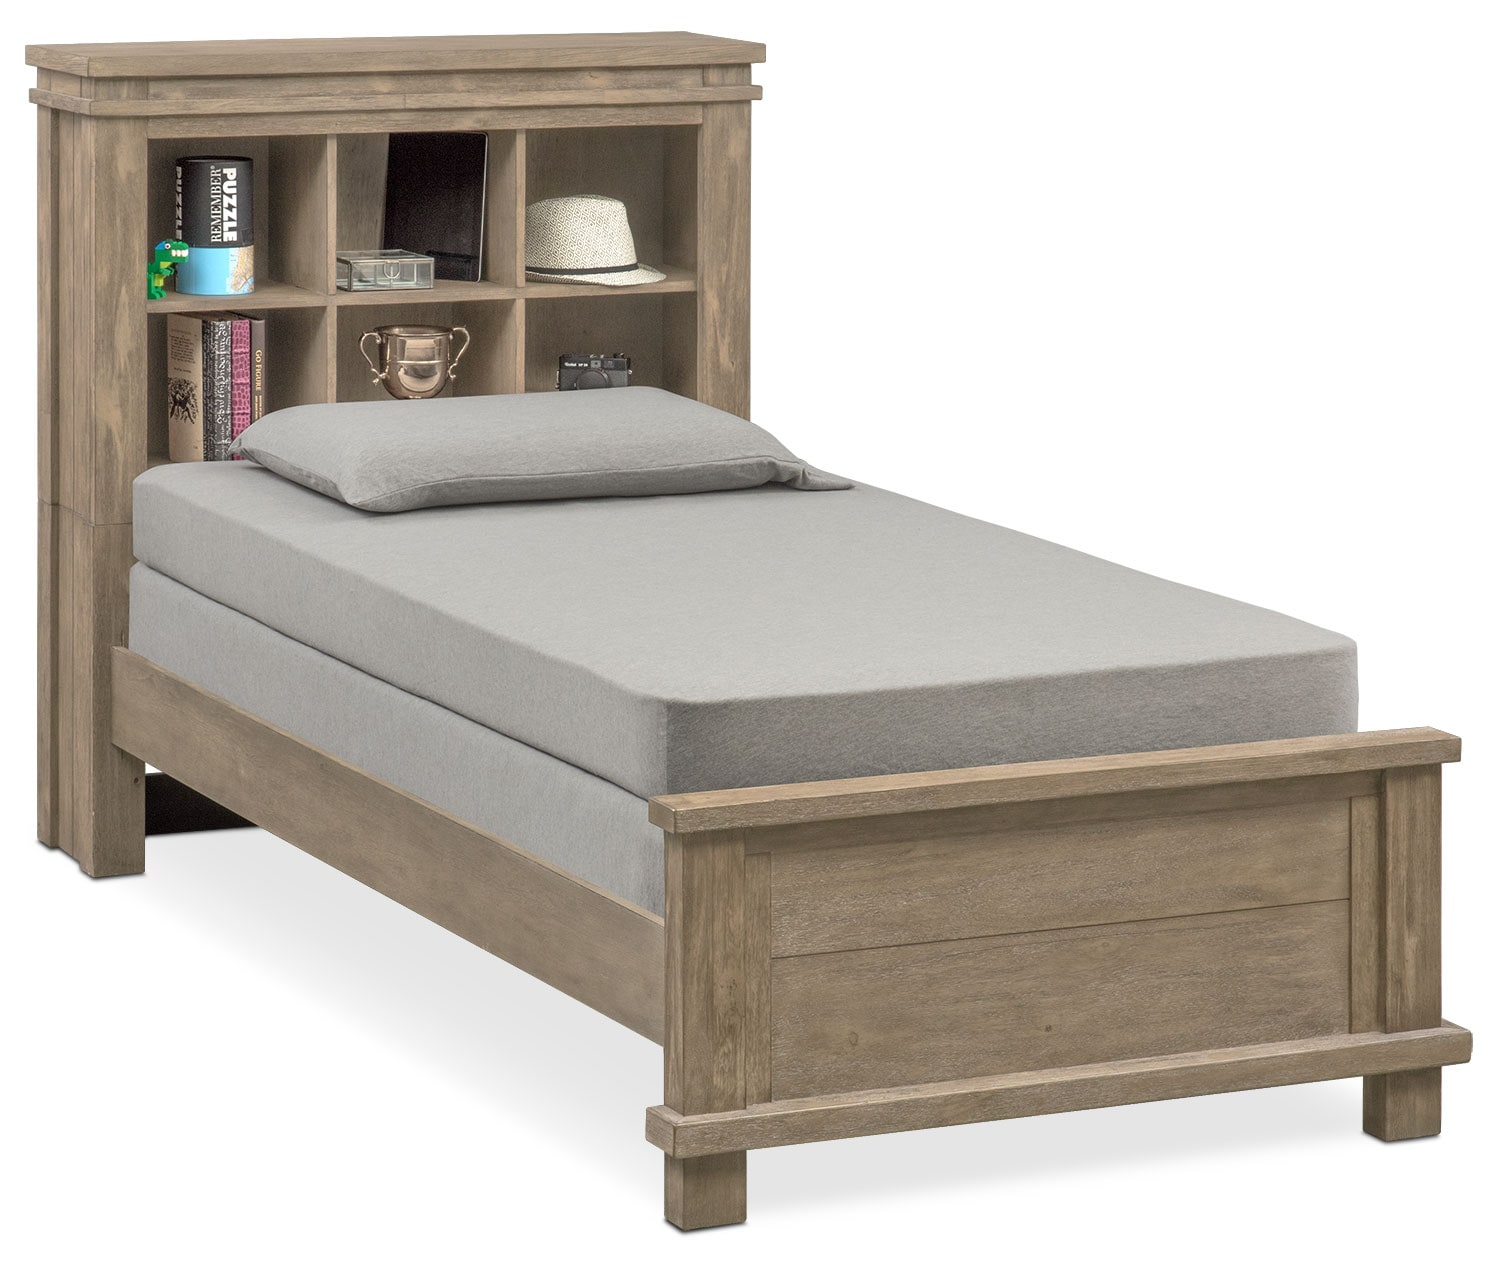 Tribeca Youth Twin Bookcase Bed - Gray | Value City ...